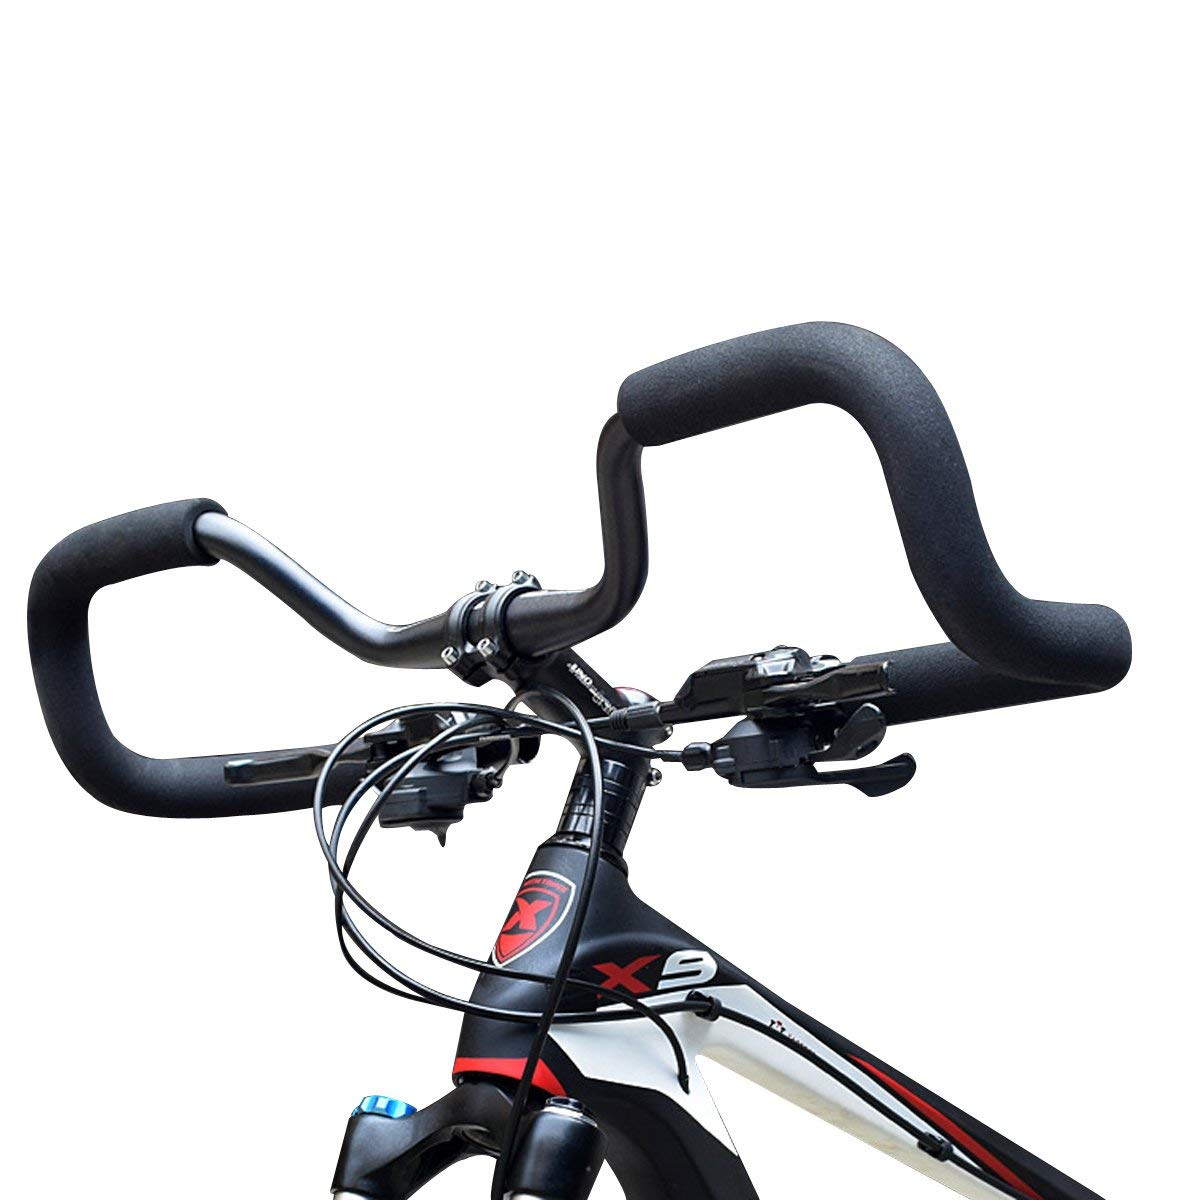 Huntfgold Touring Bicycle Butterfly Handlebars Trekking